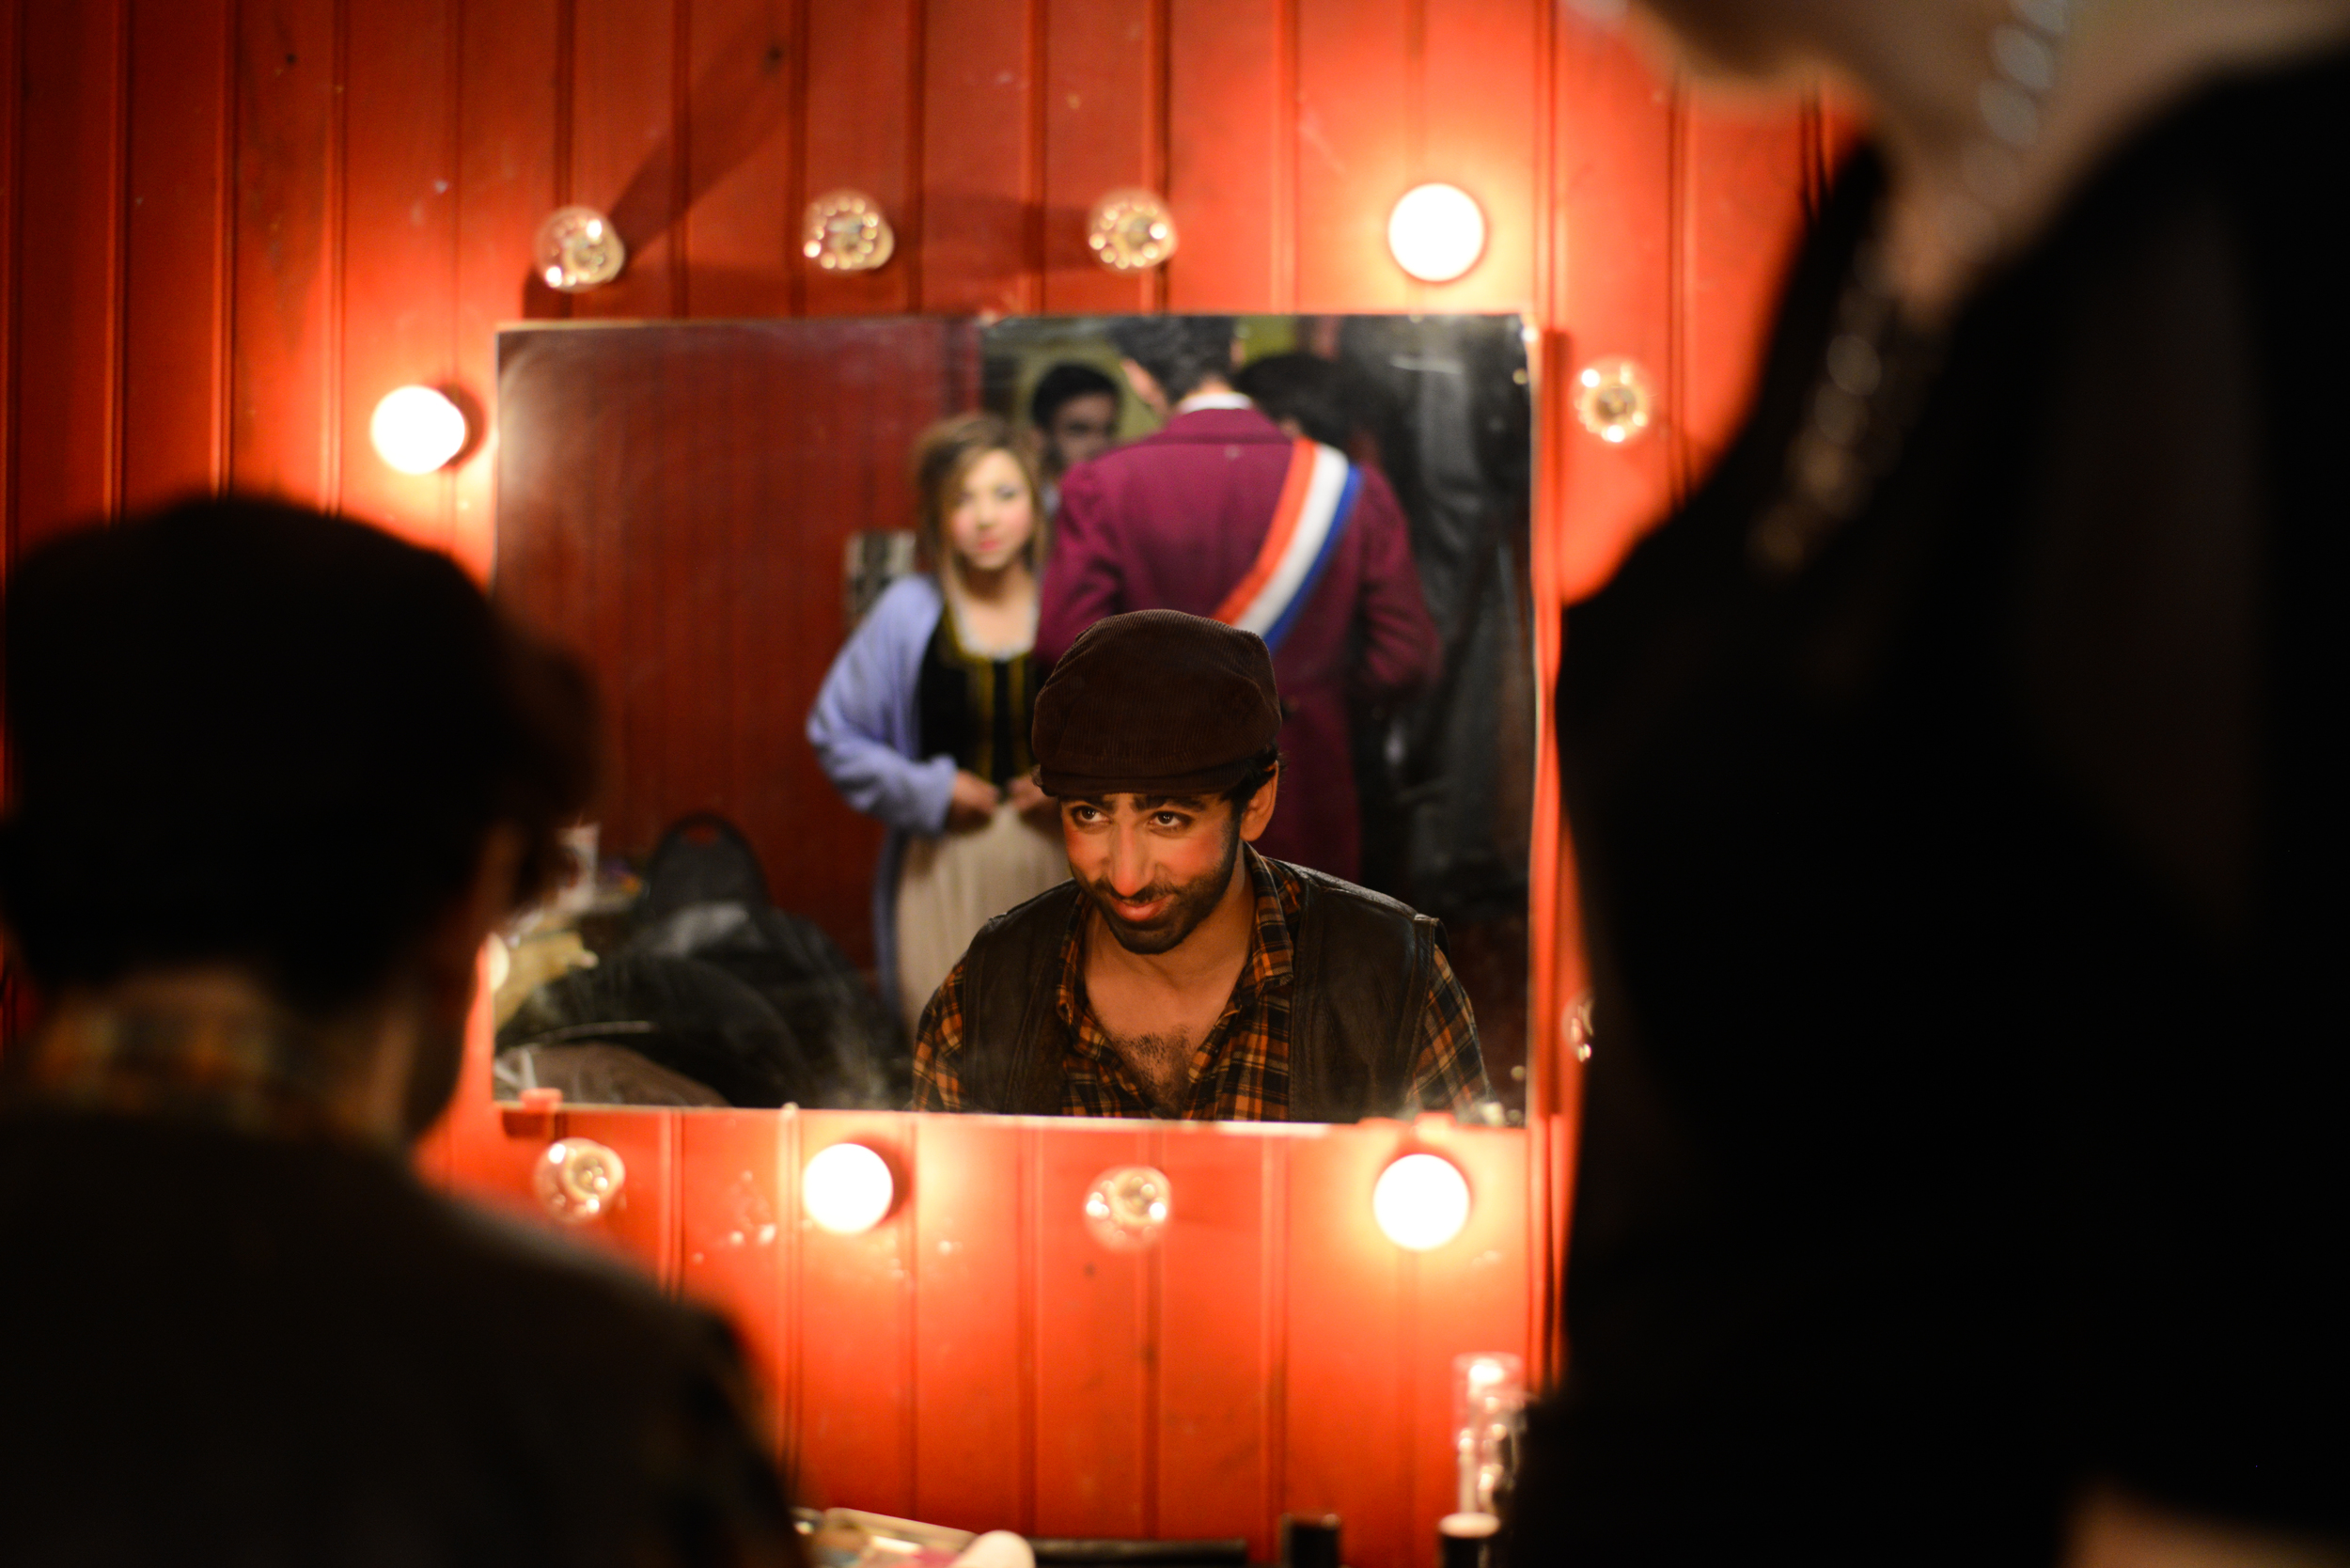 Armand Satchian, a French student playing in a college musical, checks his makeup before taking the stage at Déjazet theater in Paris on April 10, 2014.